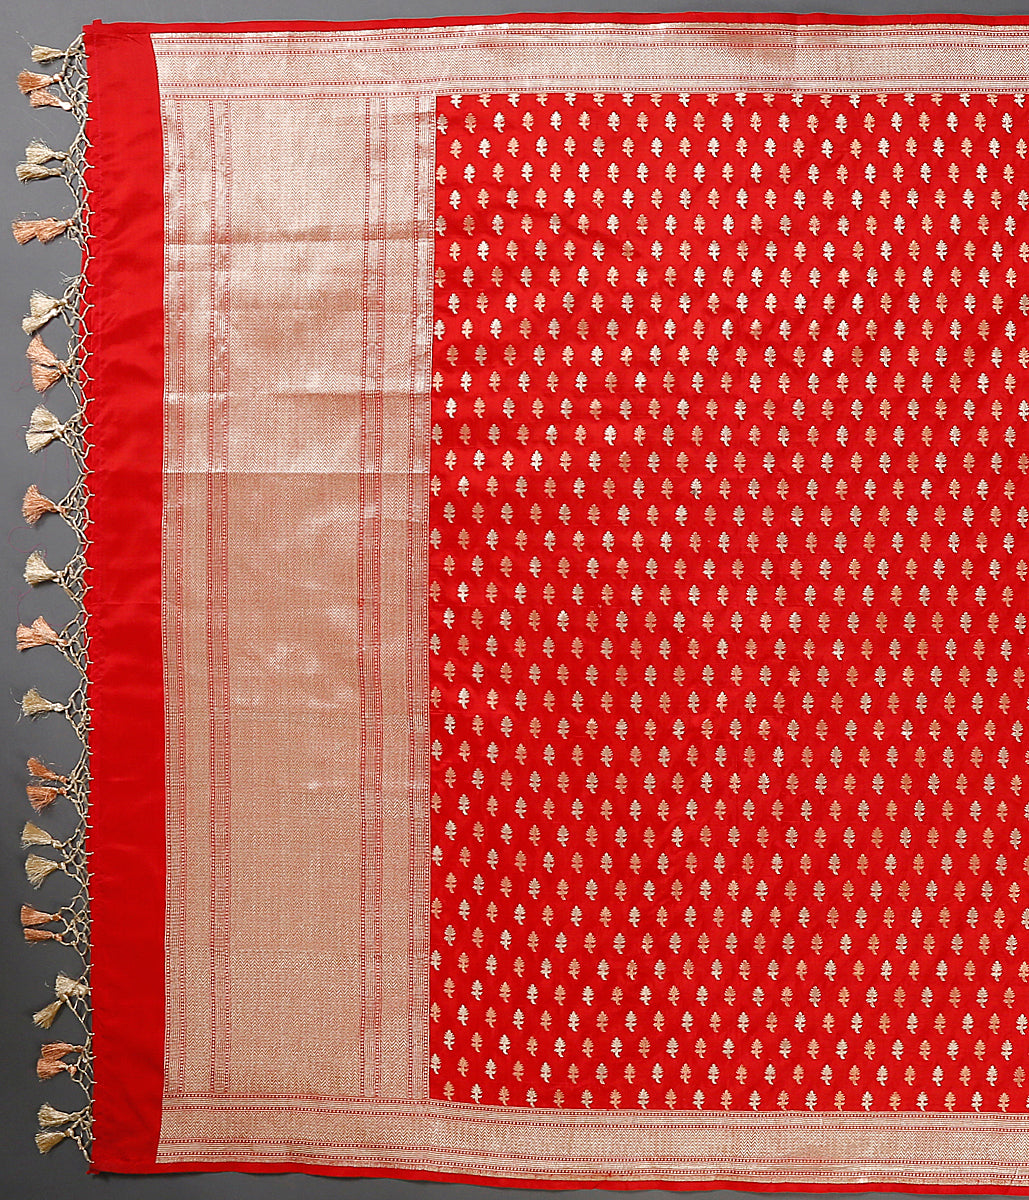 Red katan silk dupatta with leaf motifs woven in gold and copper tone zari